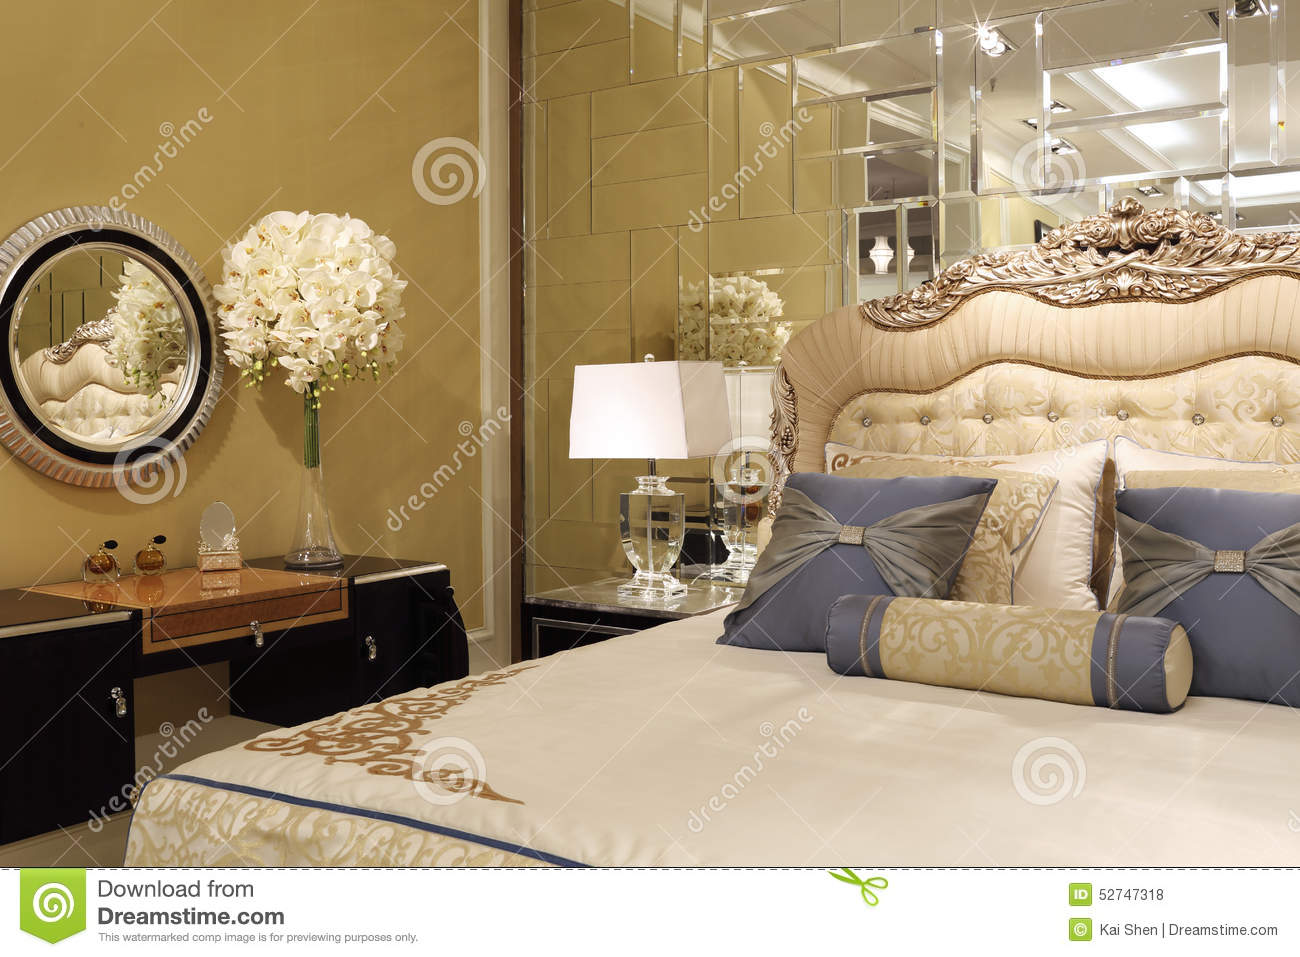 miroir dans chambre a coucher maison design. Black Bedroom Furniture Sets. Home Design Ideas